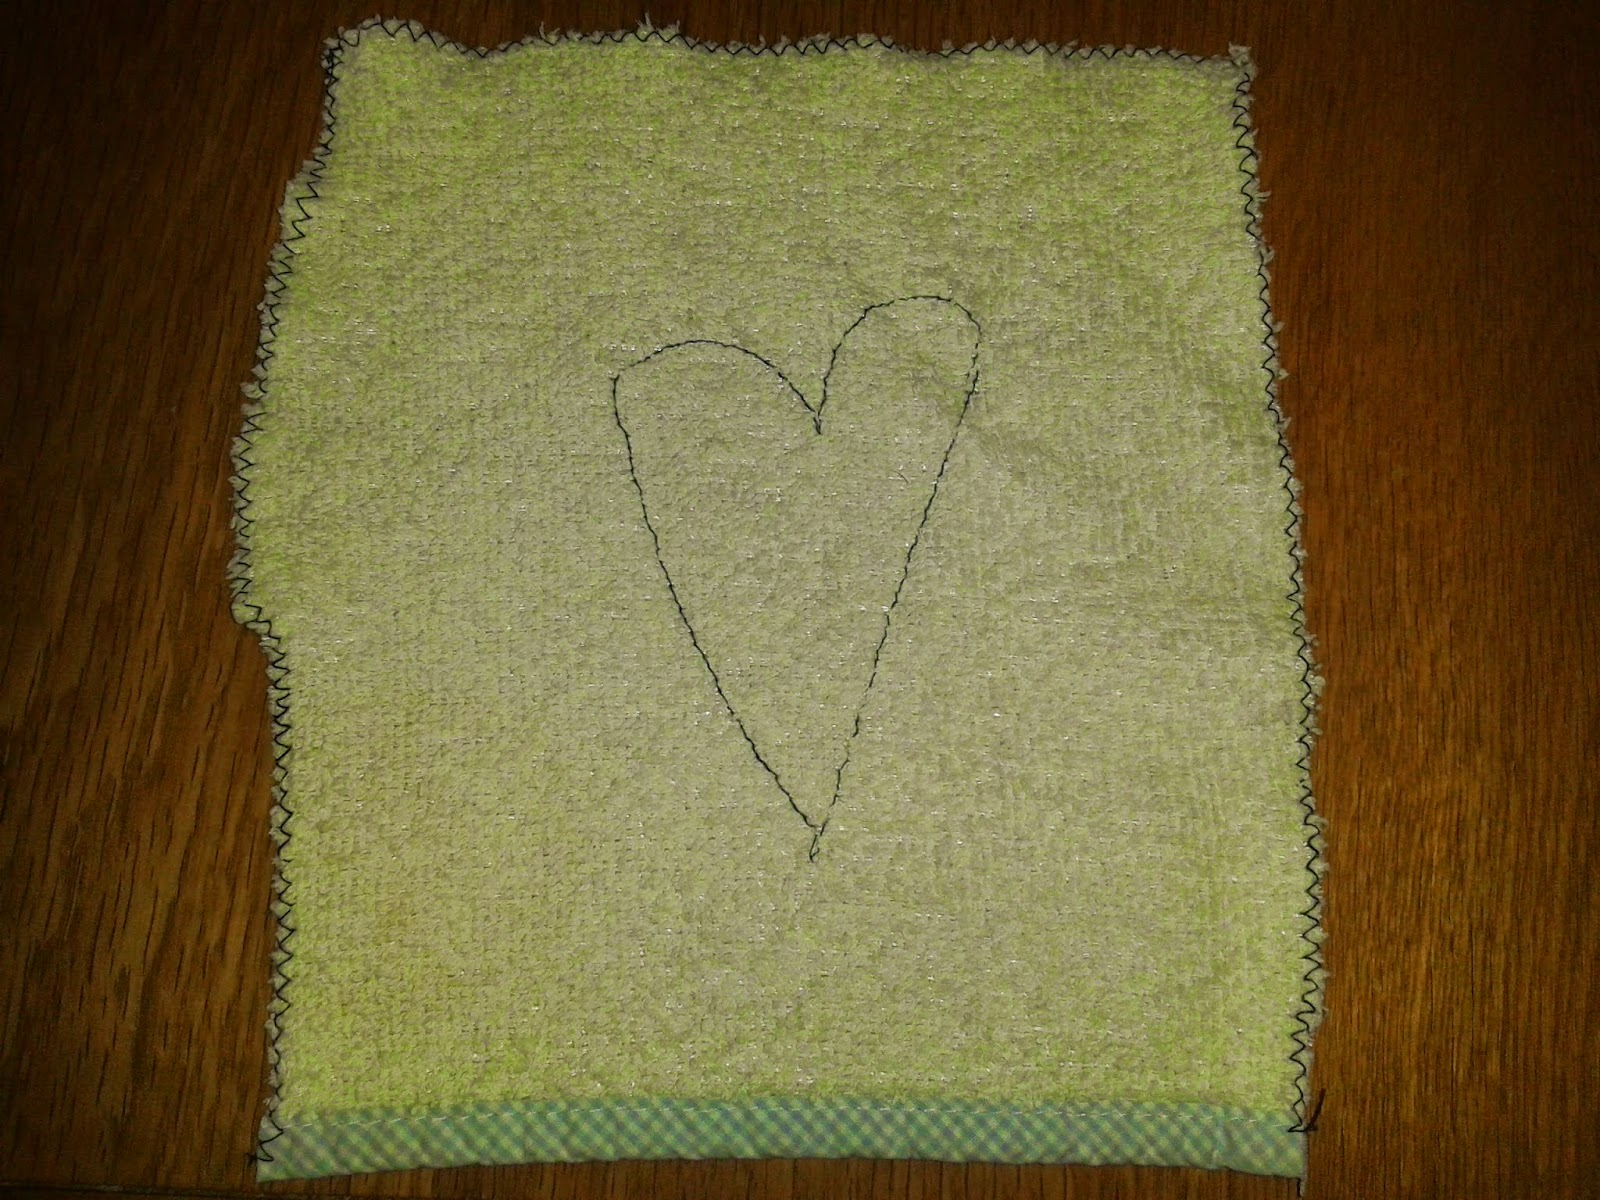 homemade cloth used as alternative to wet wipe